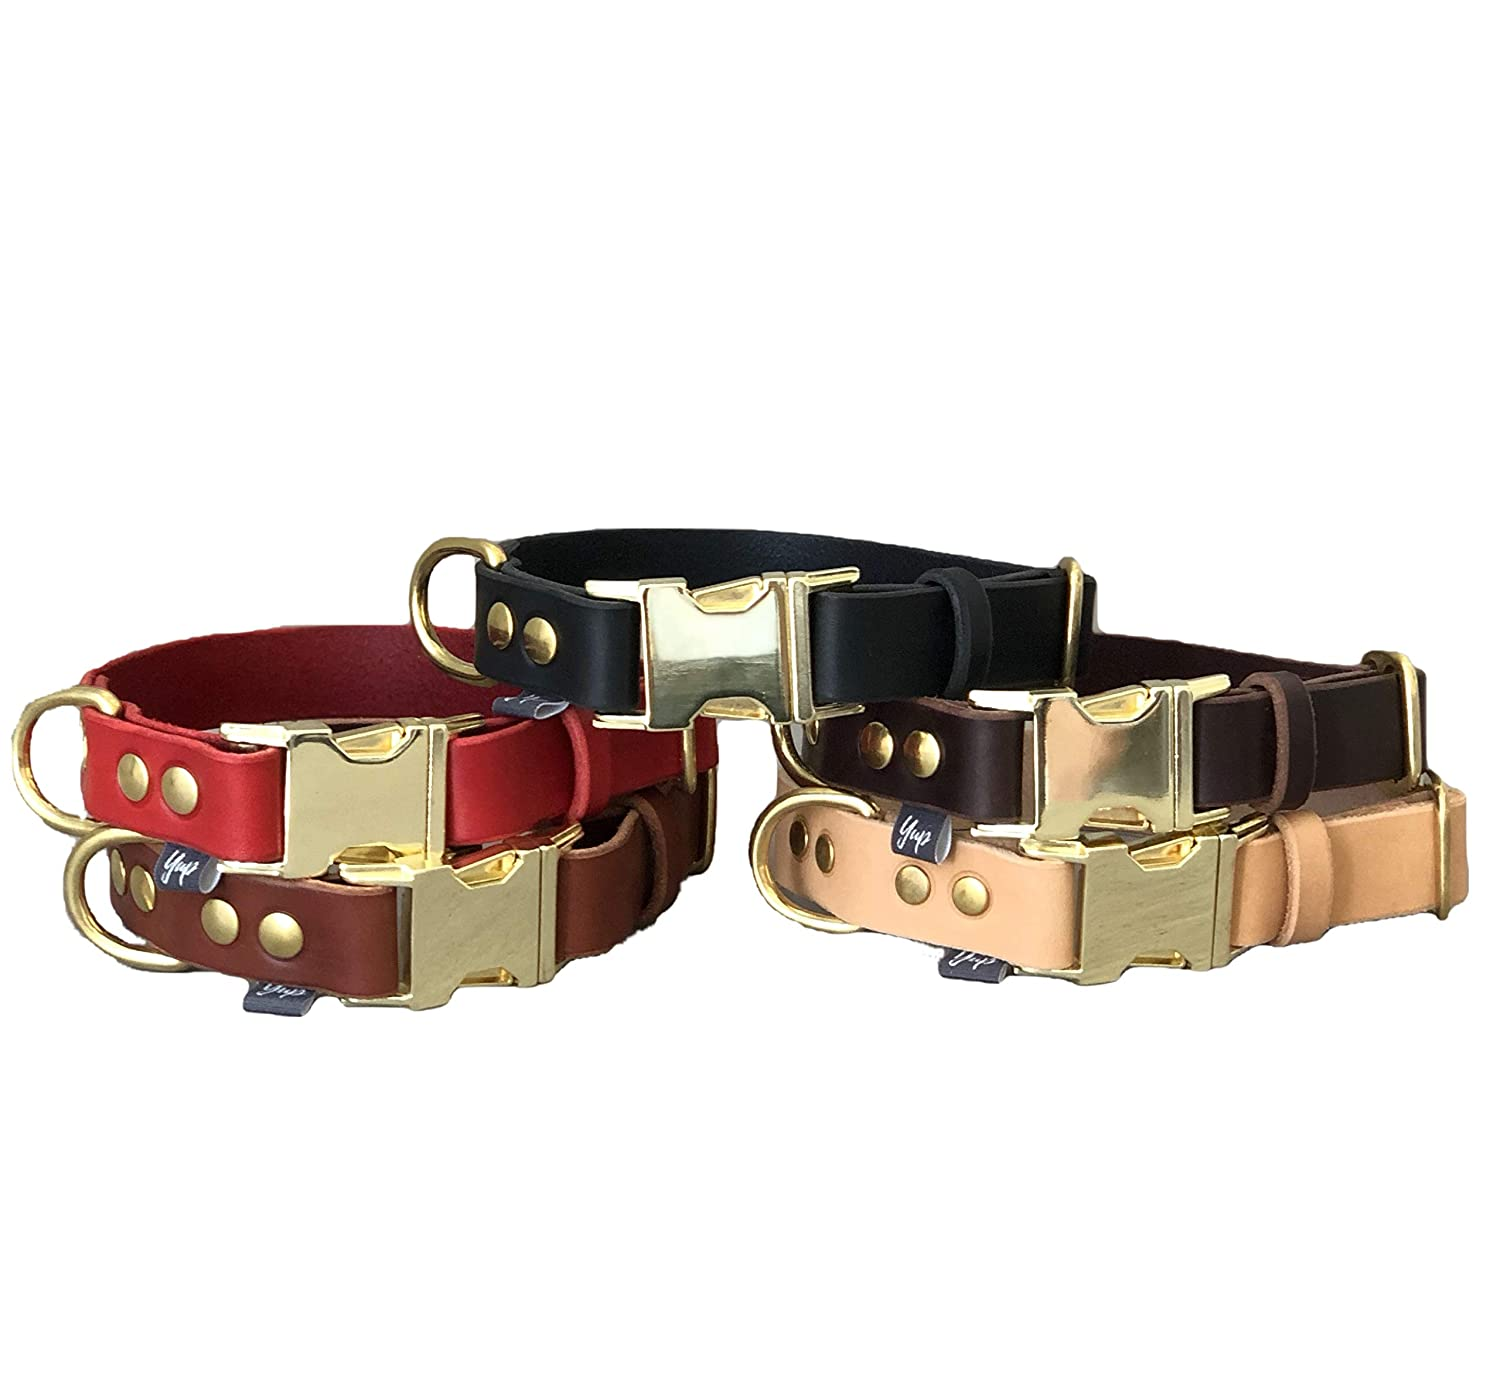 Dog Collar Quick Release Dog Collar in Tan Leather and Brass Hardware for Large and Medium Dogs Colorful Dog collar